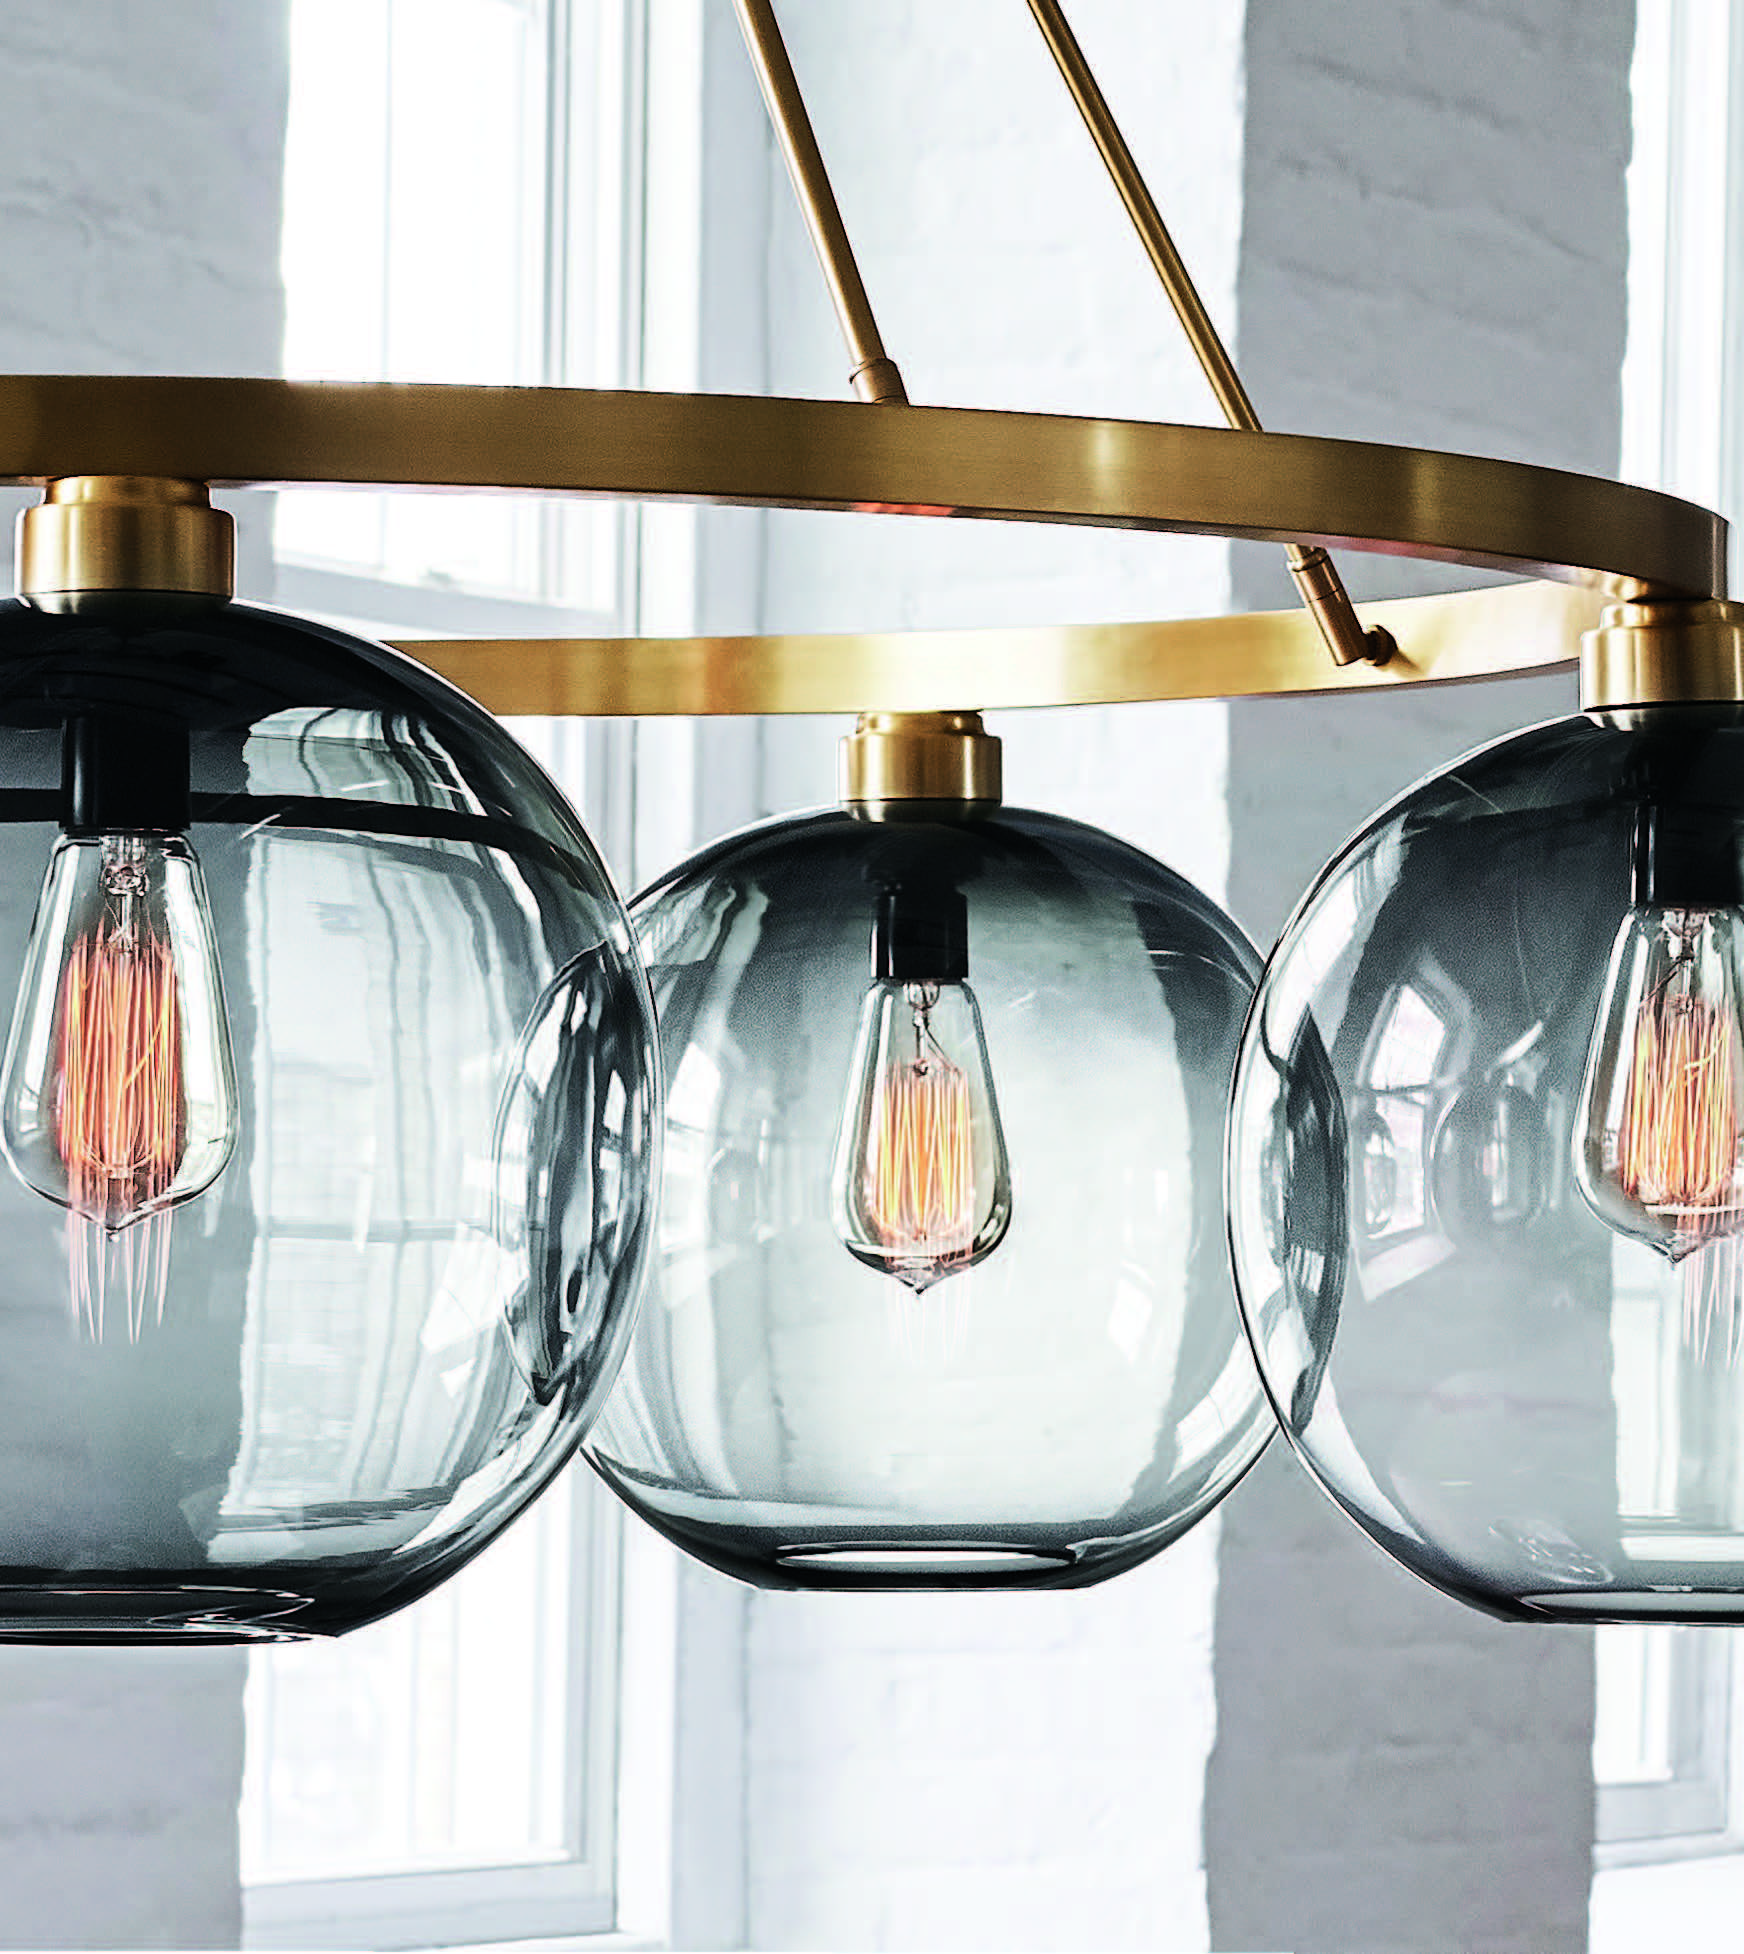 Handblown Glass Pendants By Niche Modern All Made With Love In Beacon New York Shop The Collection On Rouse Home Niche Modern Handblown Glass Pendant Modern